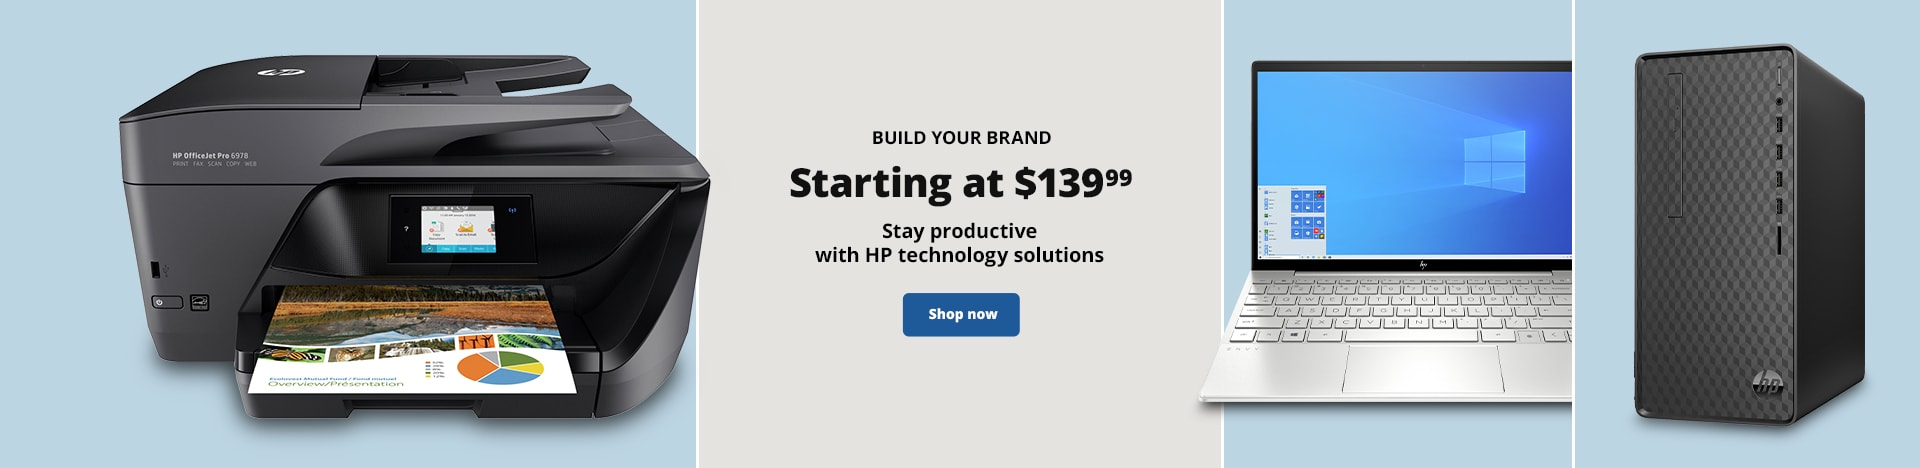 Build Your Brand. Starting at $139.99 Stay productive with HP technology solutions